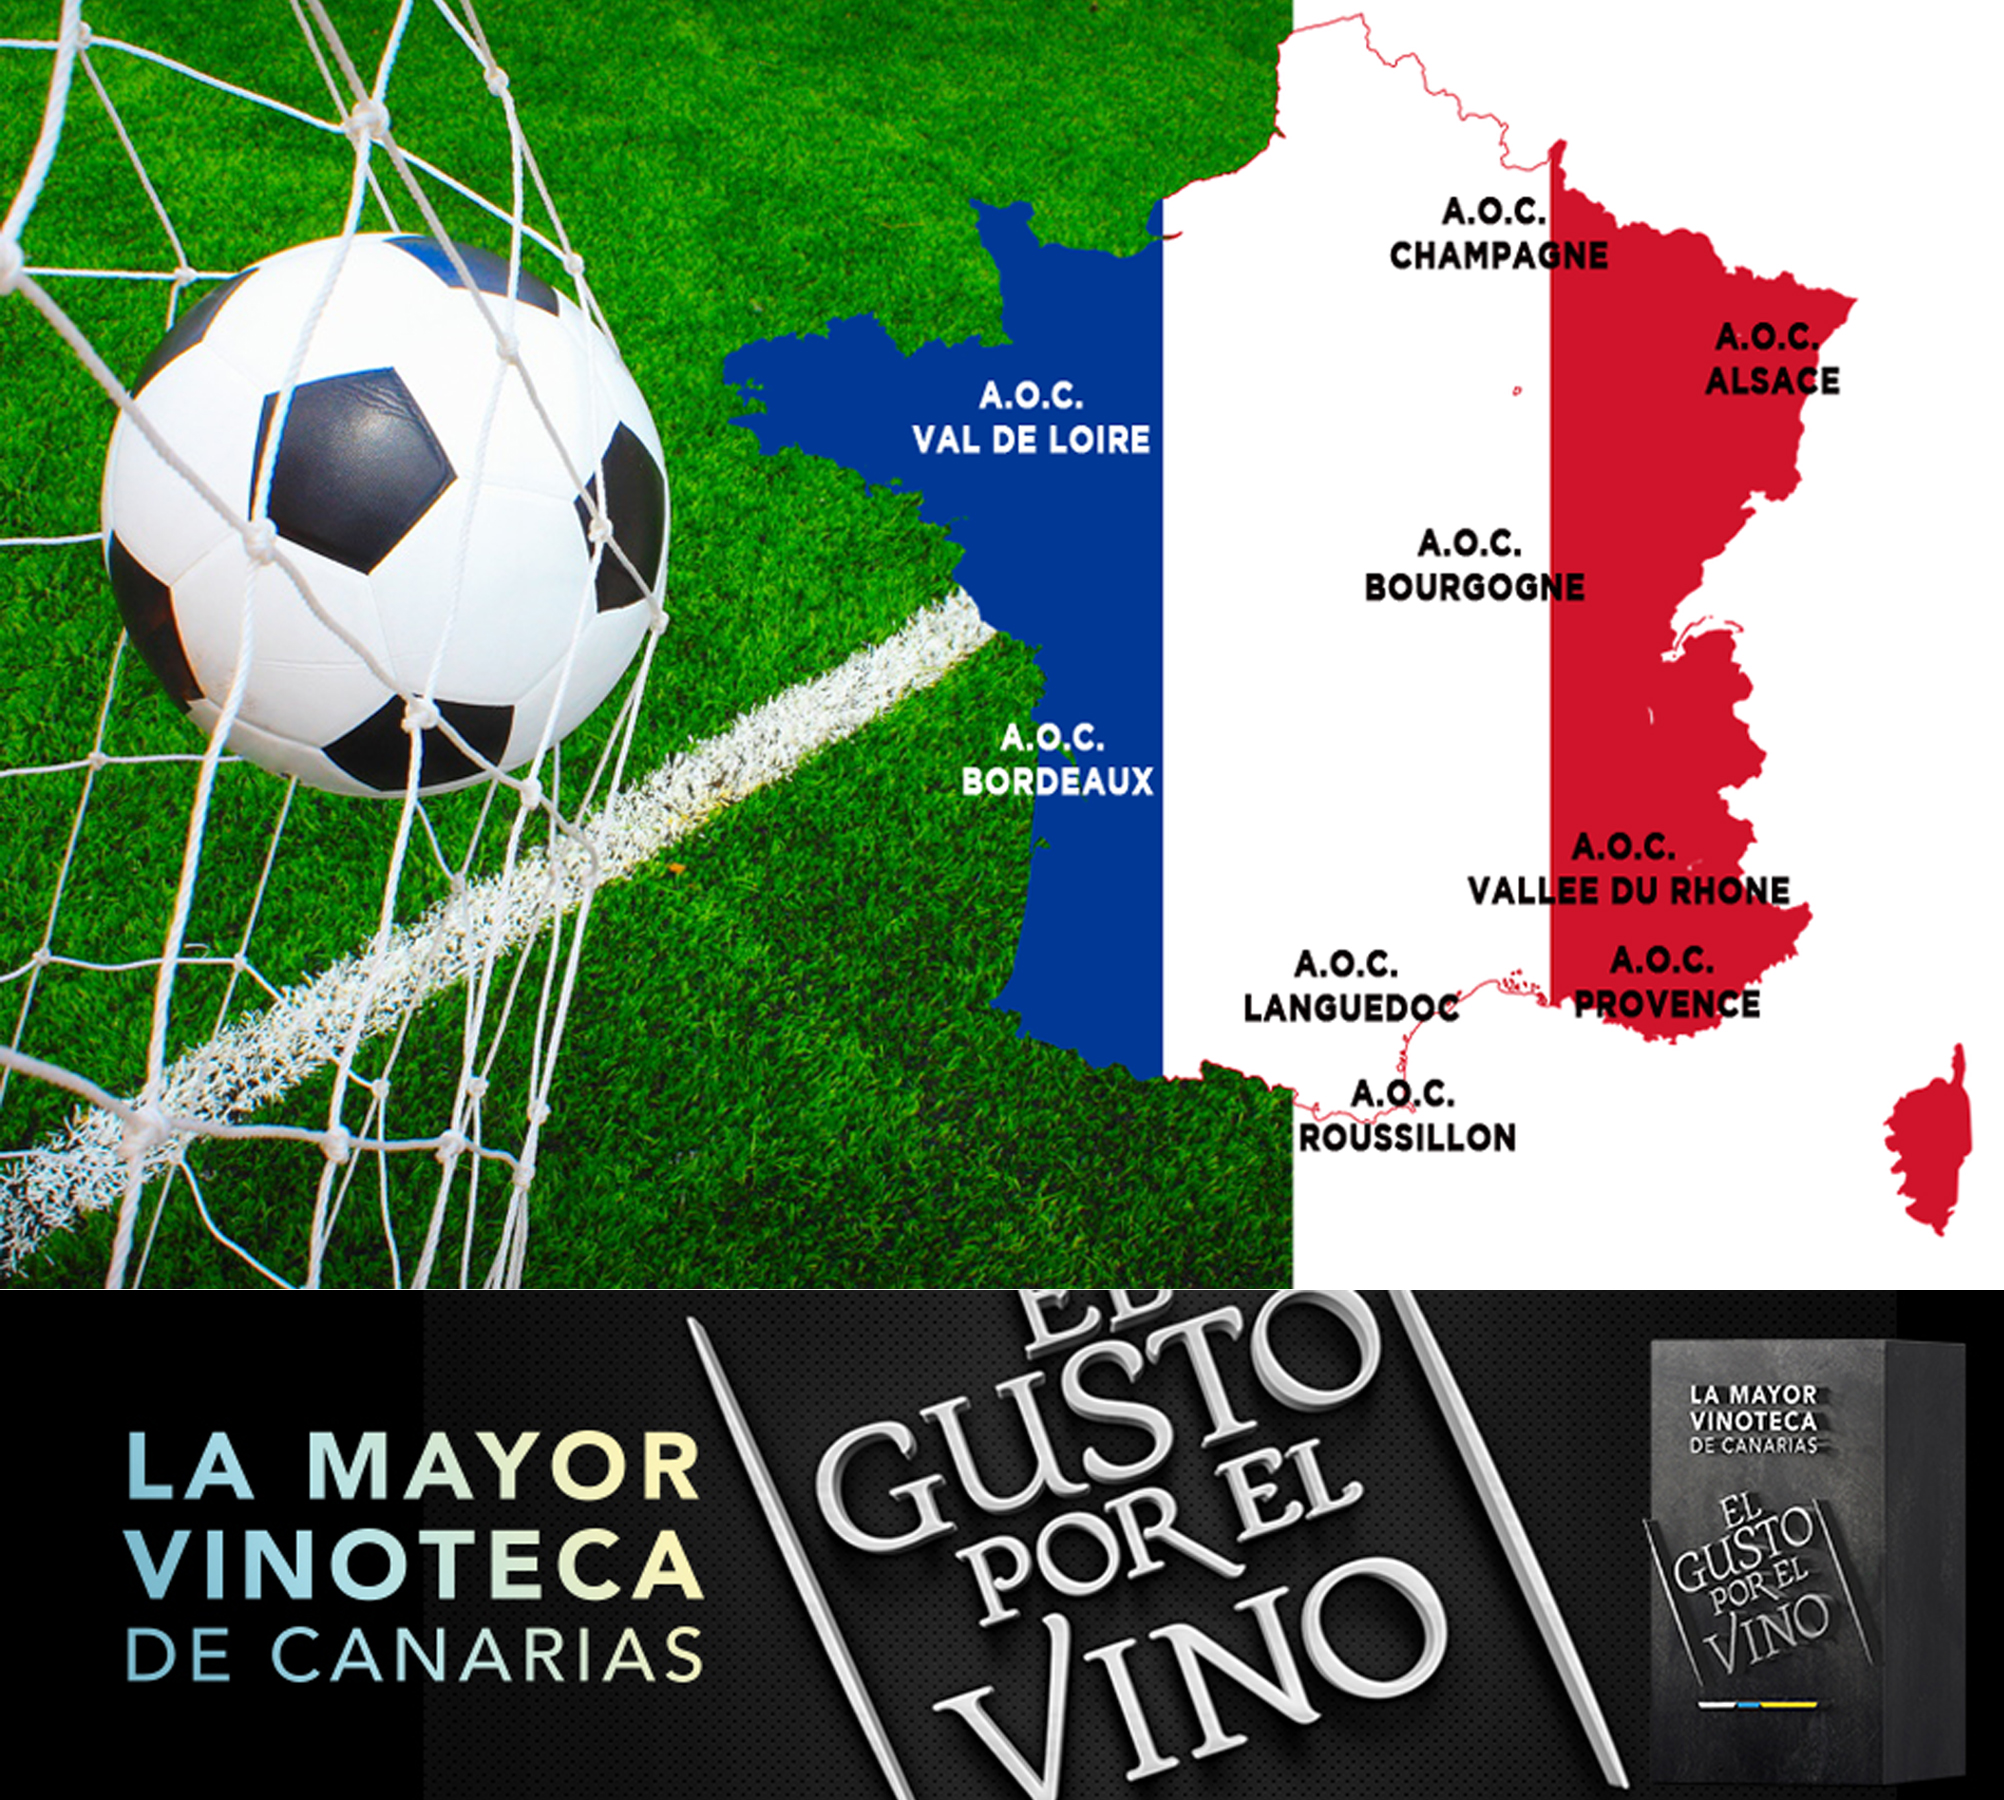 Final de la FIFA World en El Gusto por El Vino